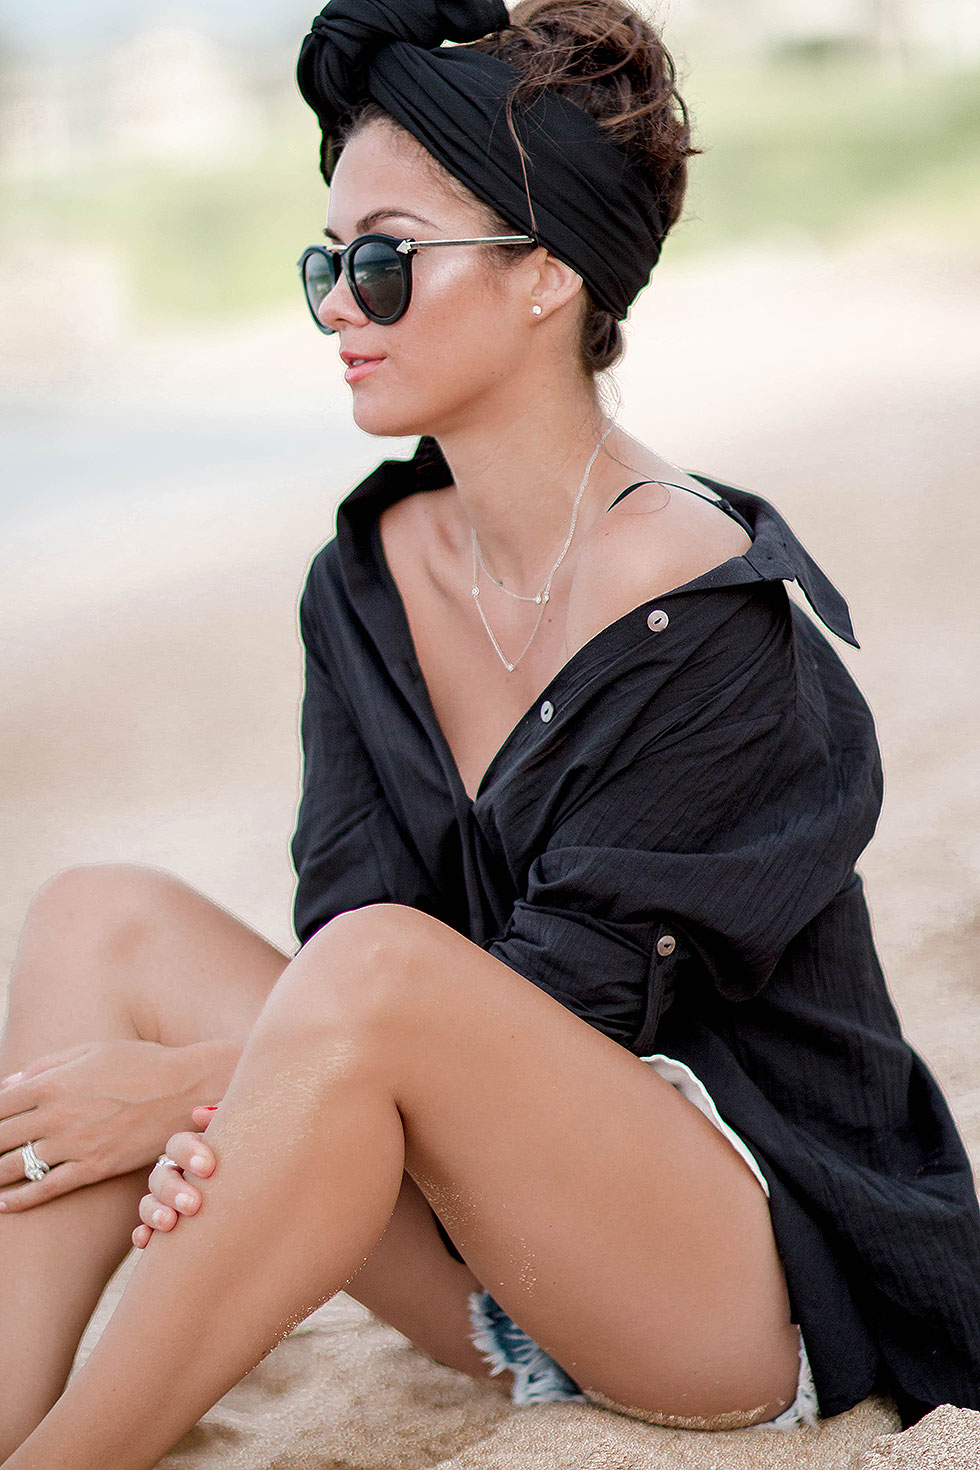 Tommy Bahama Boyfriend Shirt Cover-Up Beach Outfit Maui, Hawaii Karen Walker Harvest Superstars round-frame acetate sunglasses